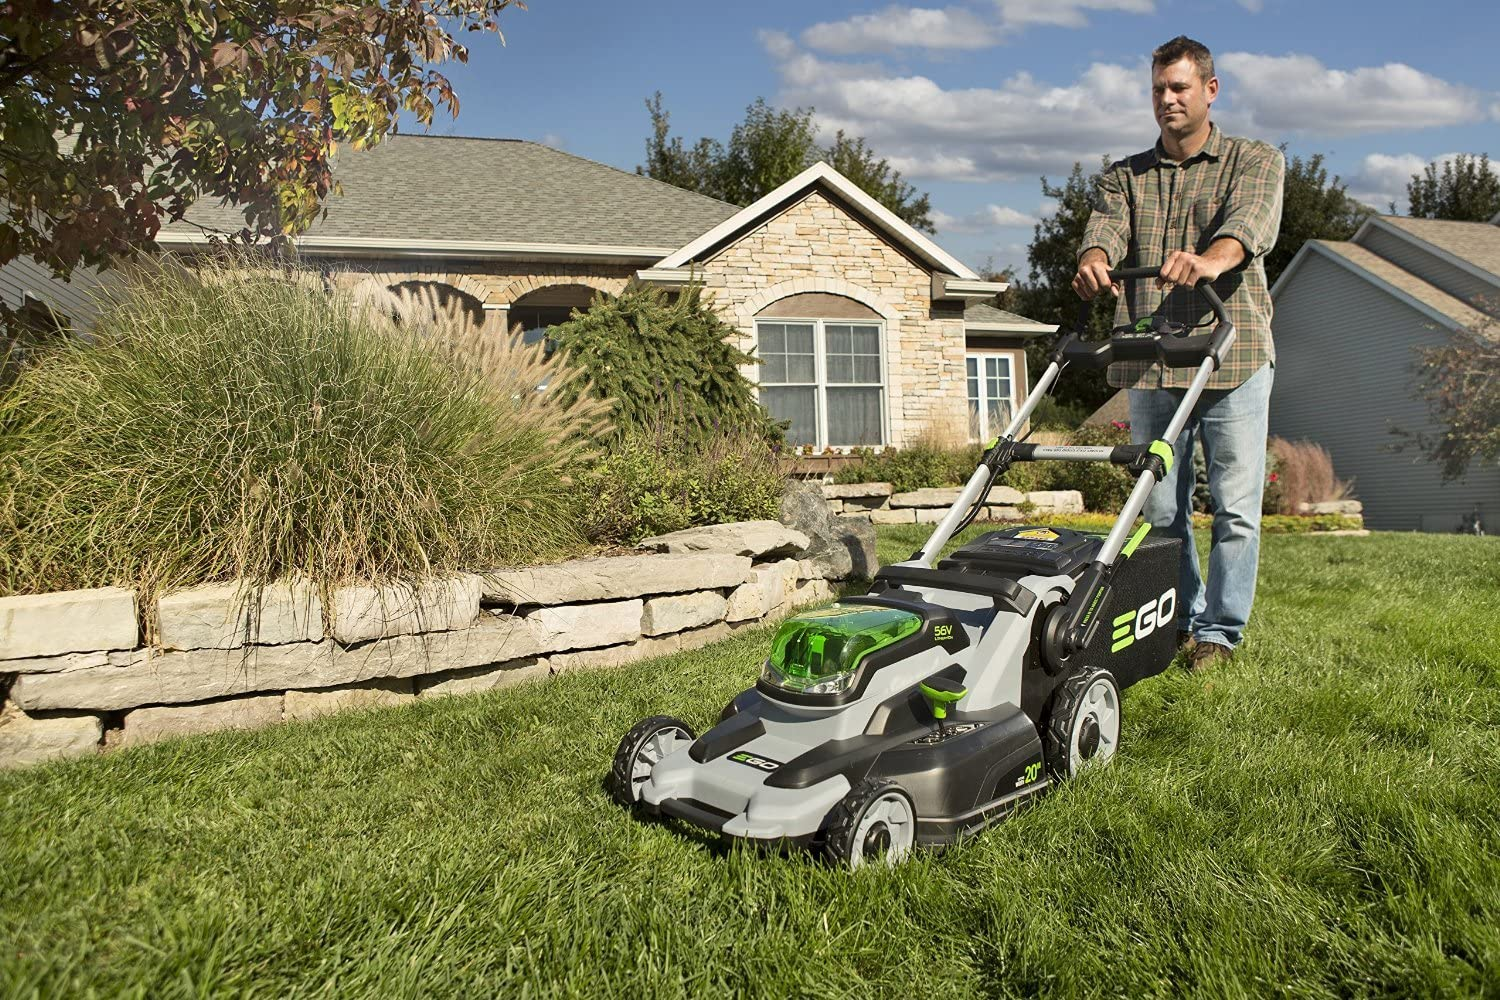 EGO Power+ LM2000-S Best Battery Powered Lawn Mowers Review